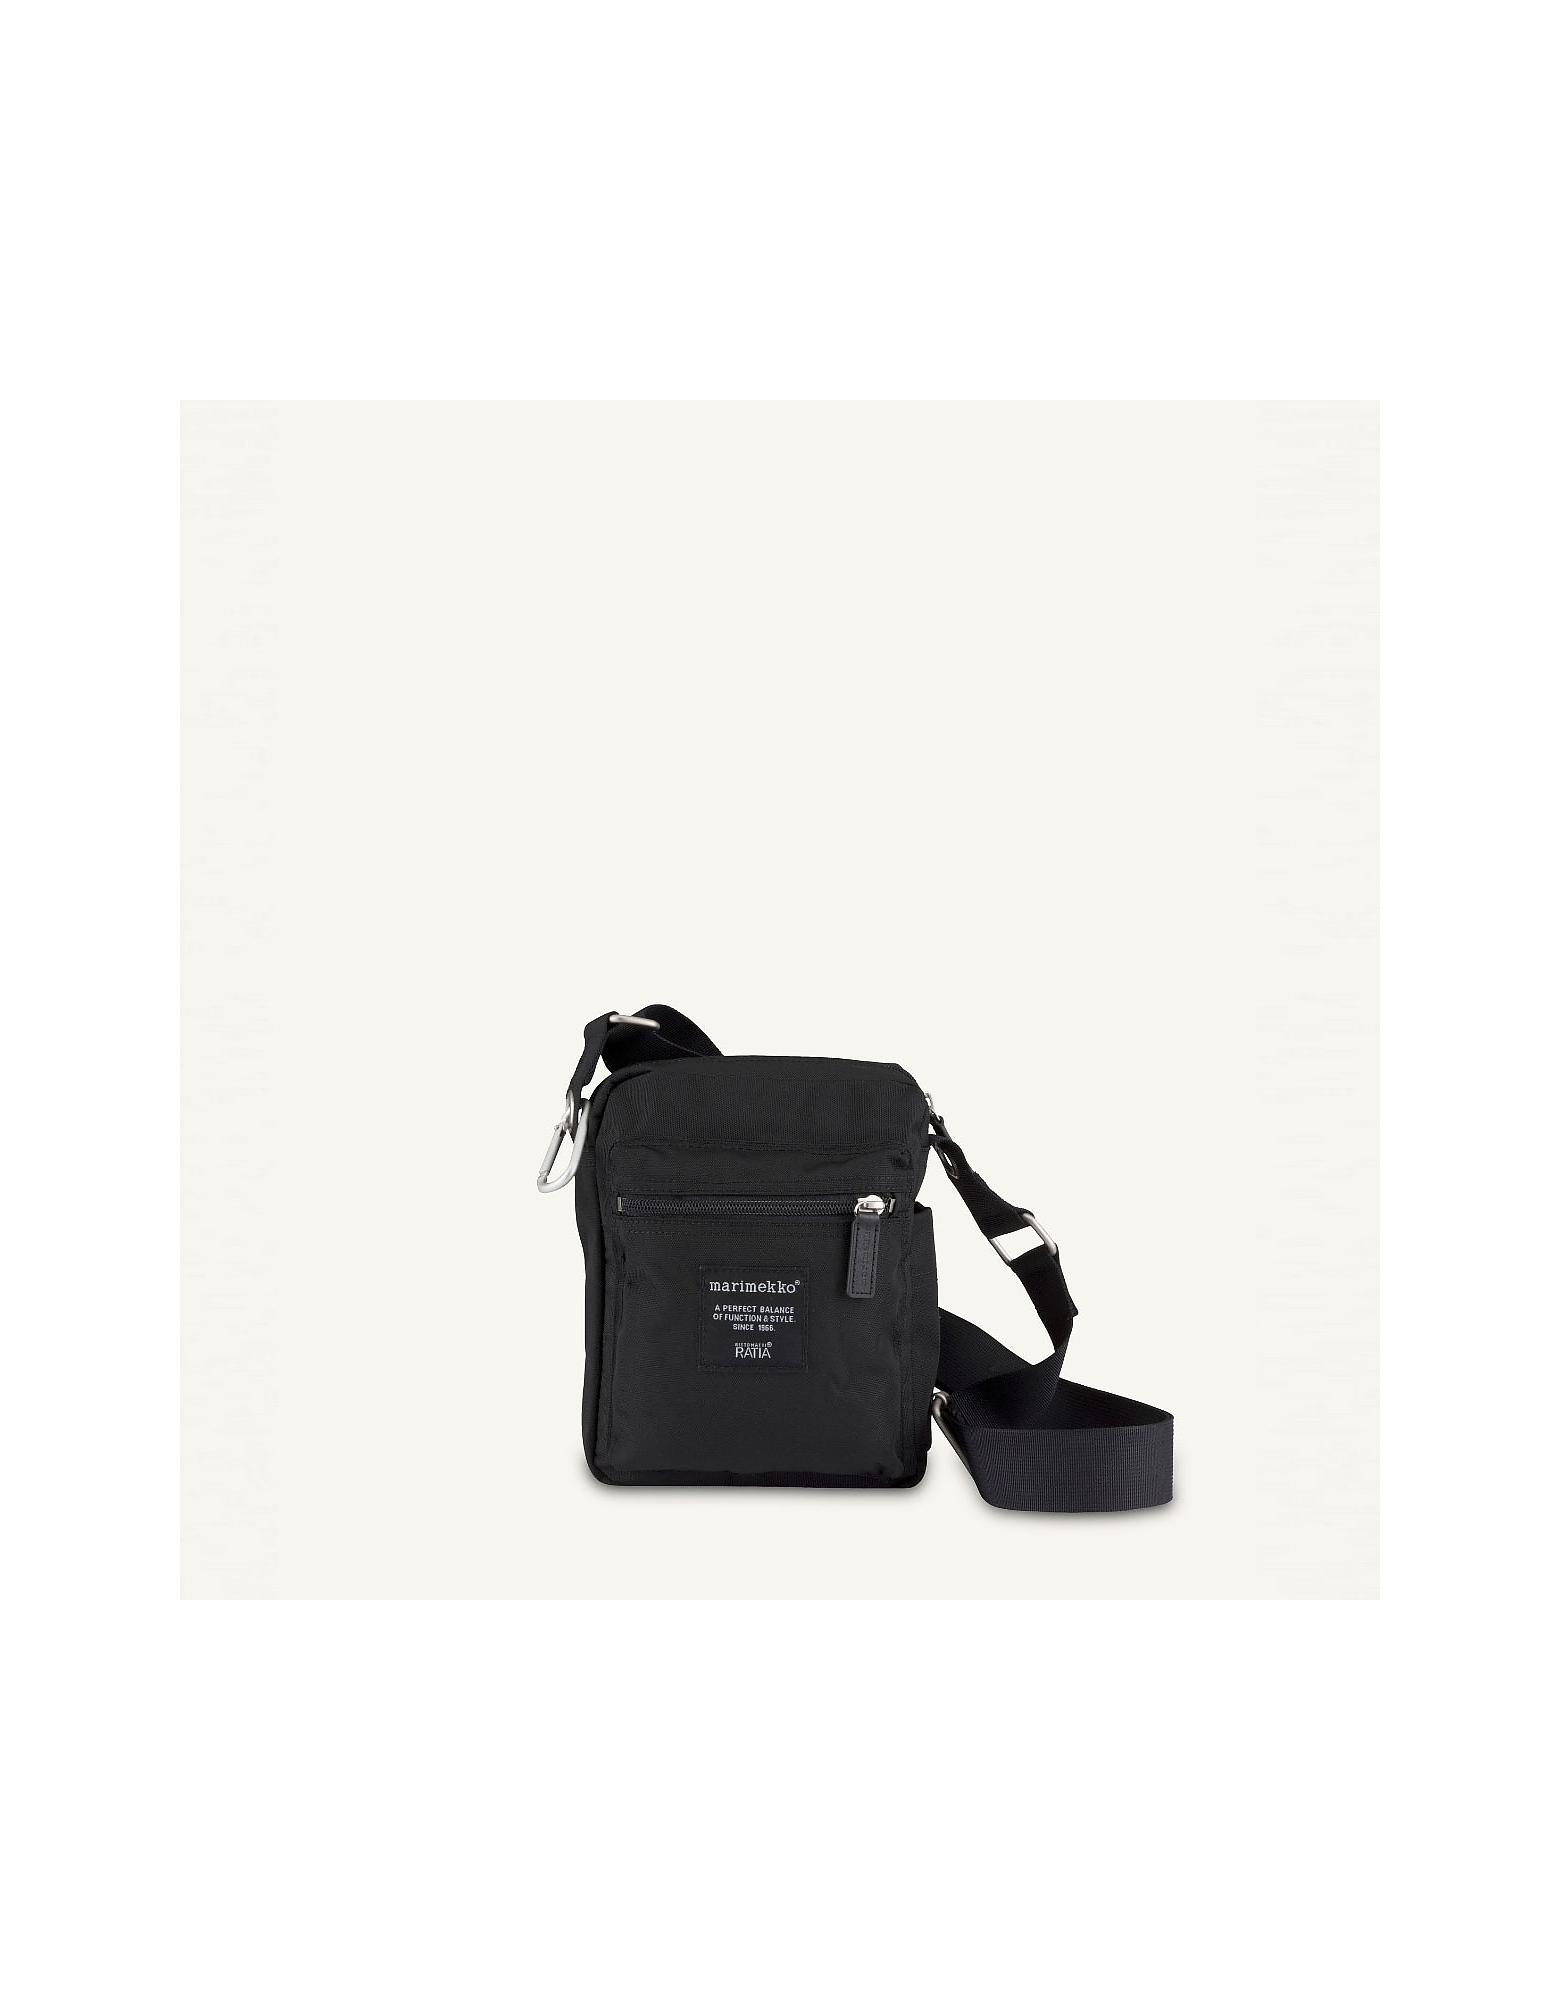 MARIMEKKO Designer Handbags, Black Crossbody Bag